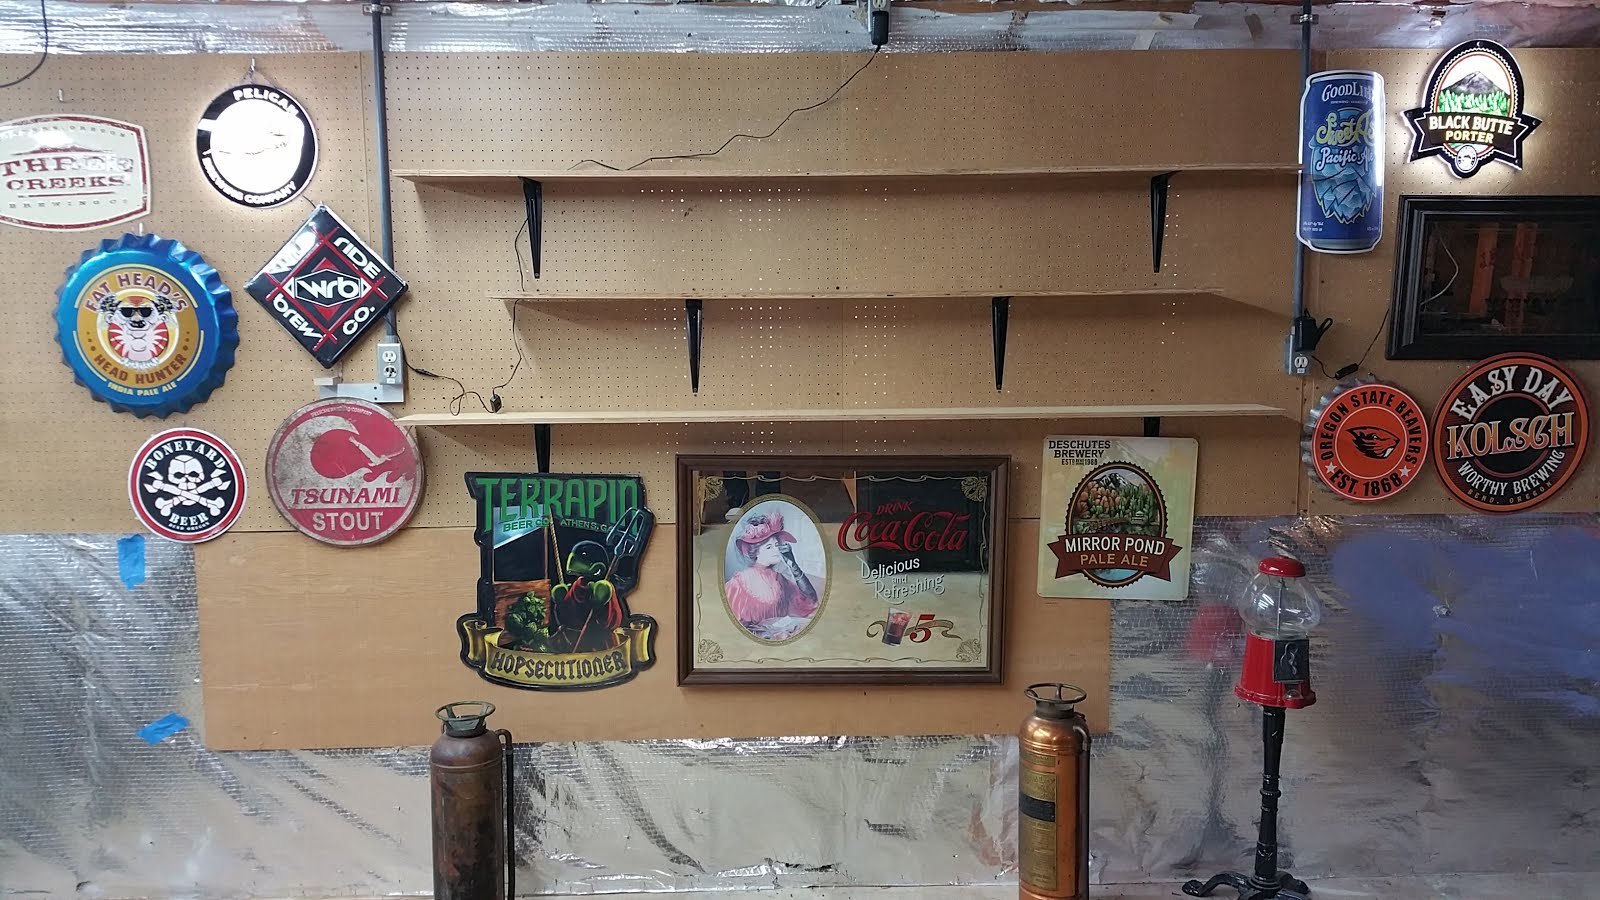 99 bottles of beer on my wall?? Man cave blog.